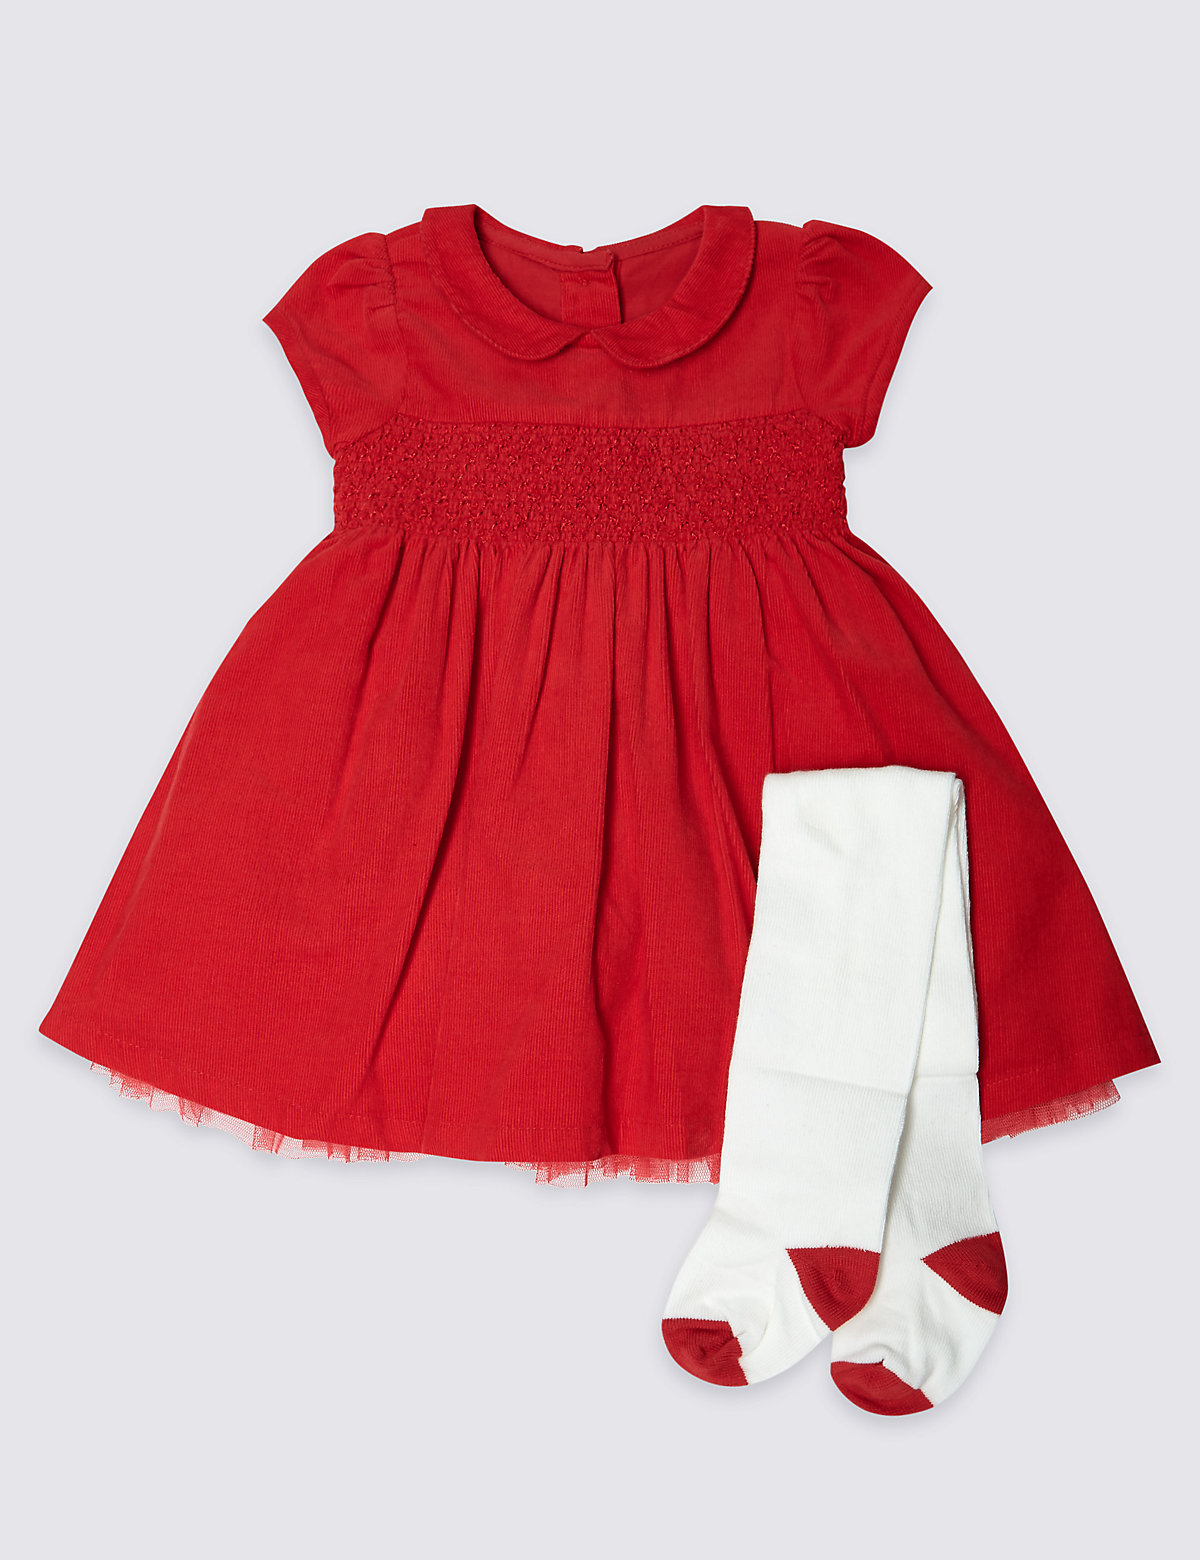 2 Piece Short Sleeve Cord Dress with Tights